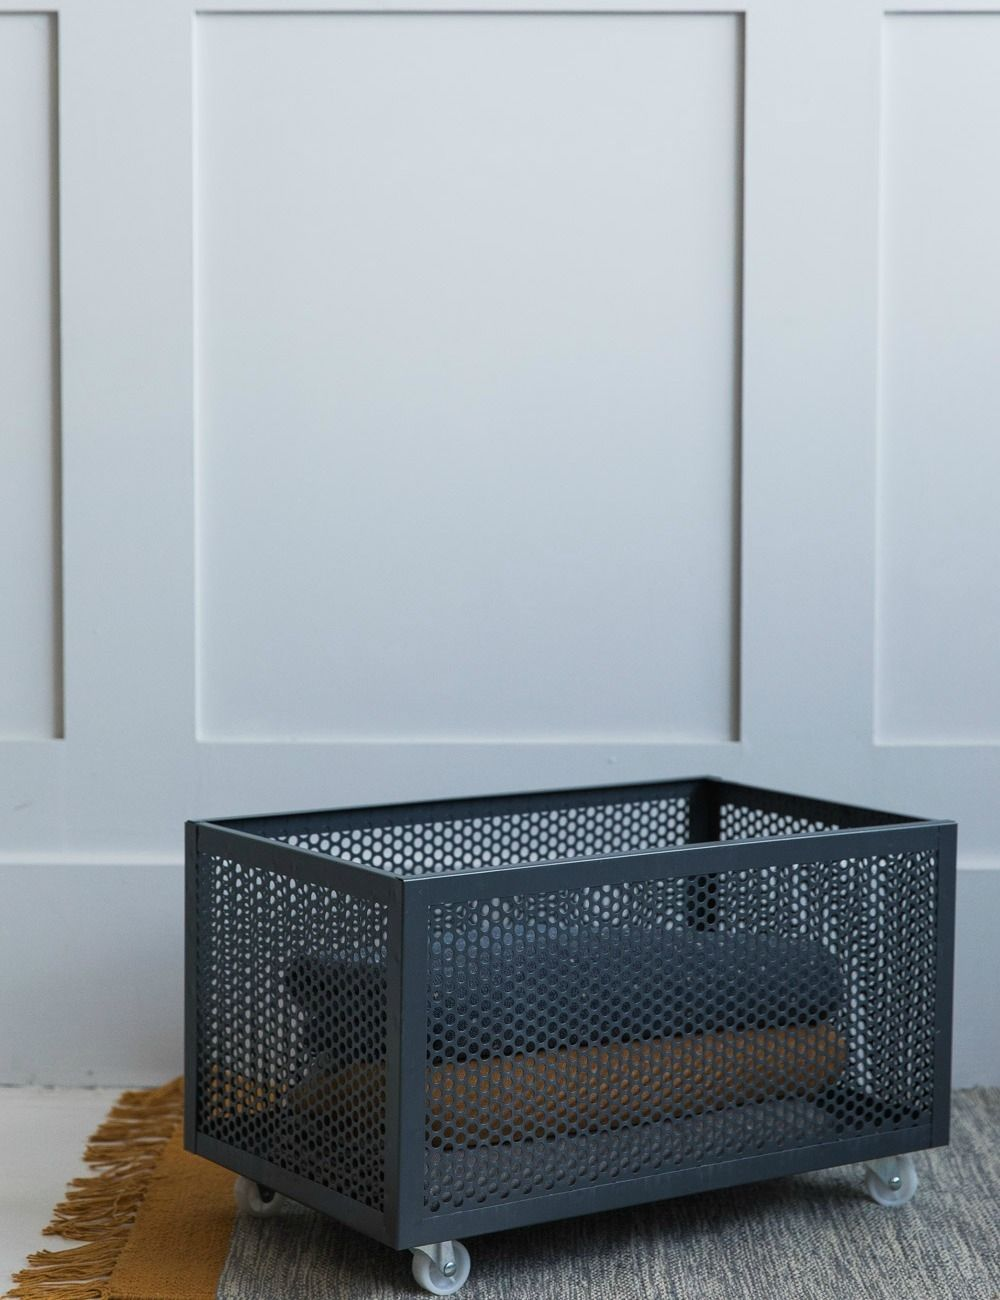 Grey Metal Storage Box With Wheels Buy Online Now From Rose Grey Eclectic Home Accessories And Stylish In 2020 Metal Storage Box Retro Sideboard Headboard Storage